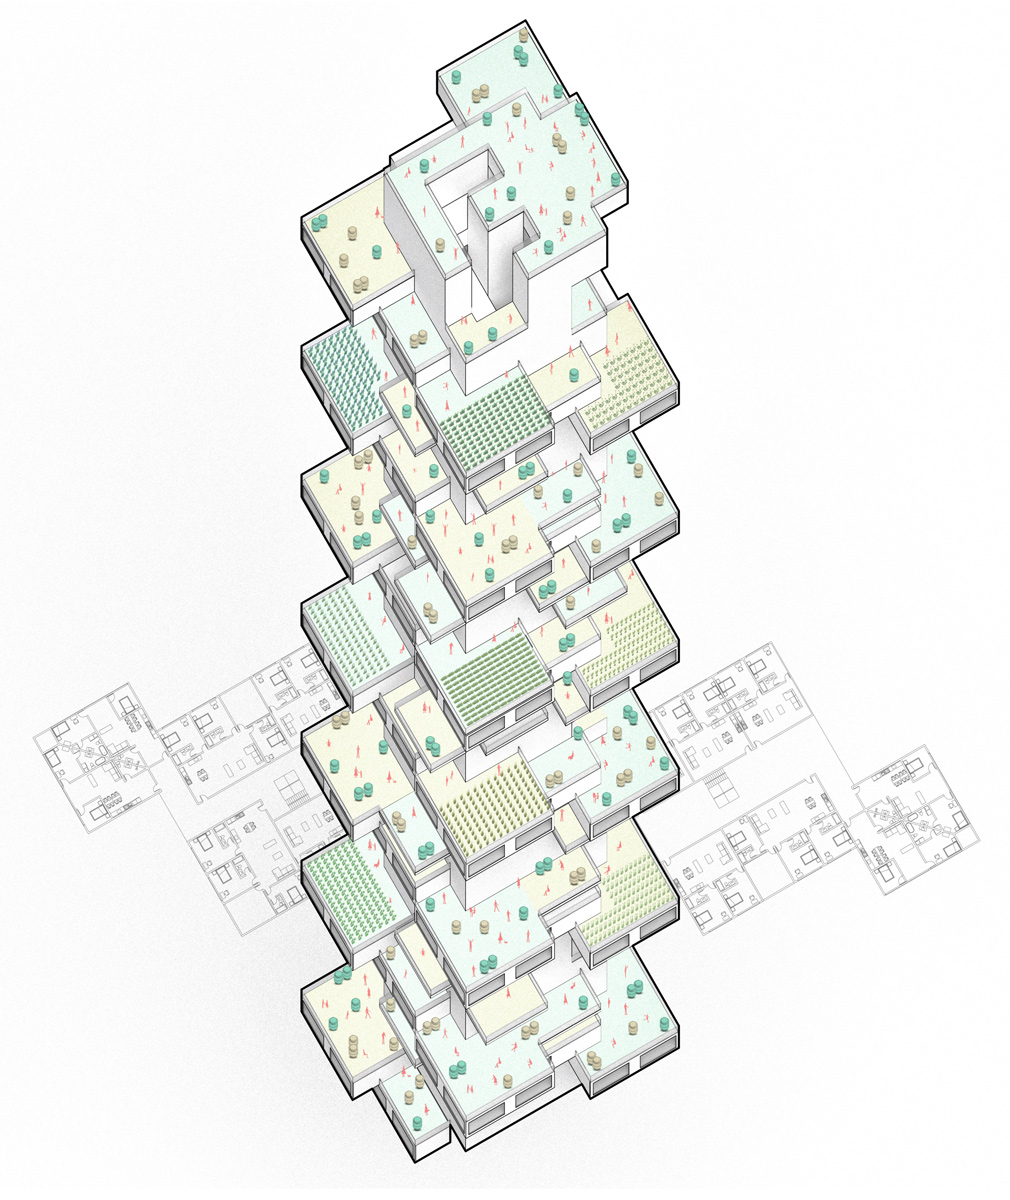 Axonometric diagram illustrating the variety and organization of a tower with shared farming terraces by student Zihao Li